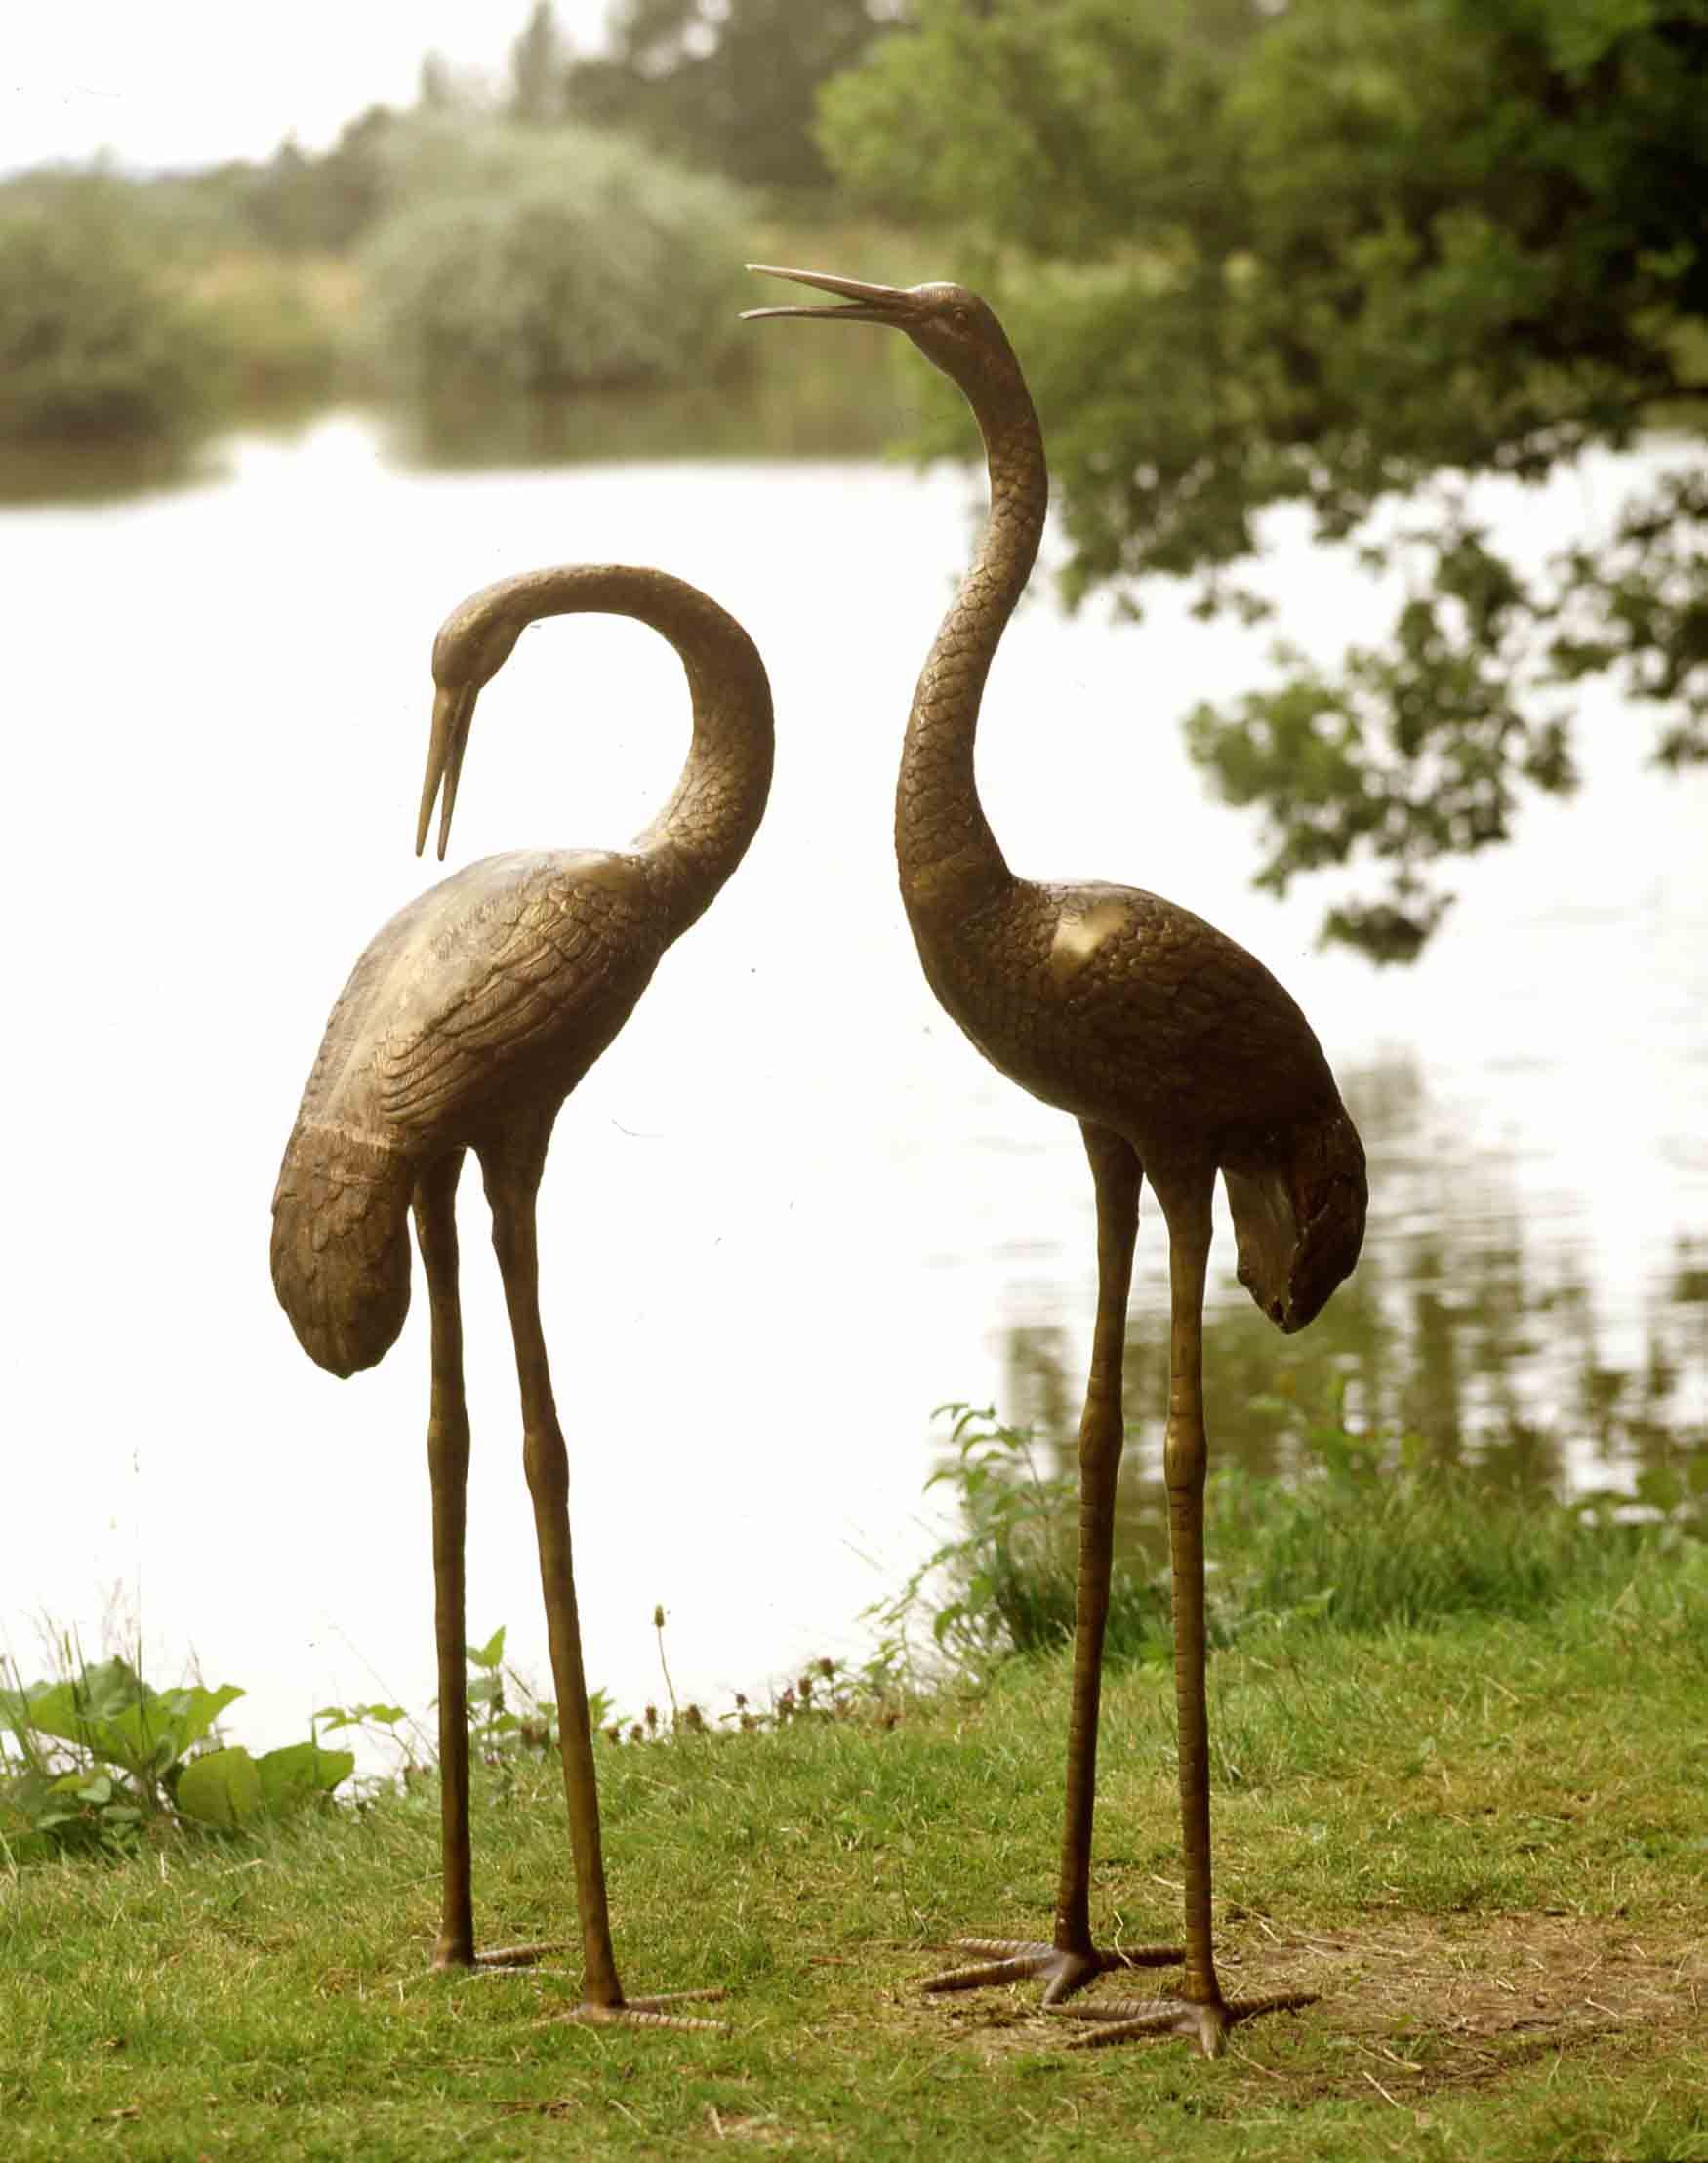 Heron garden ornament - Large Brass Crane Statuary And Ornaments